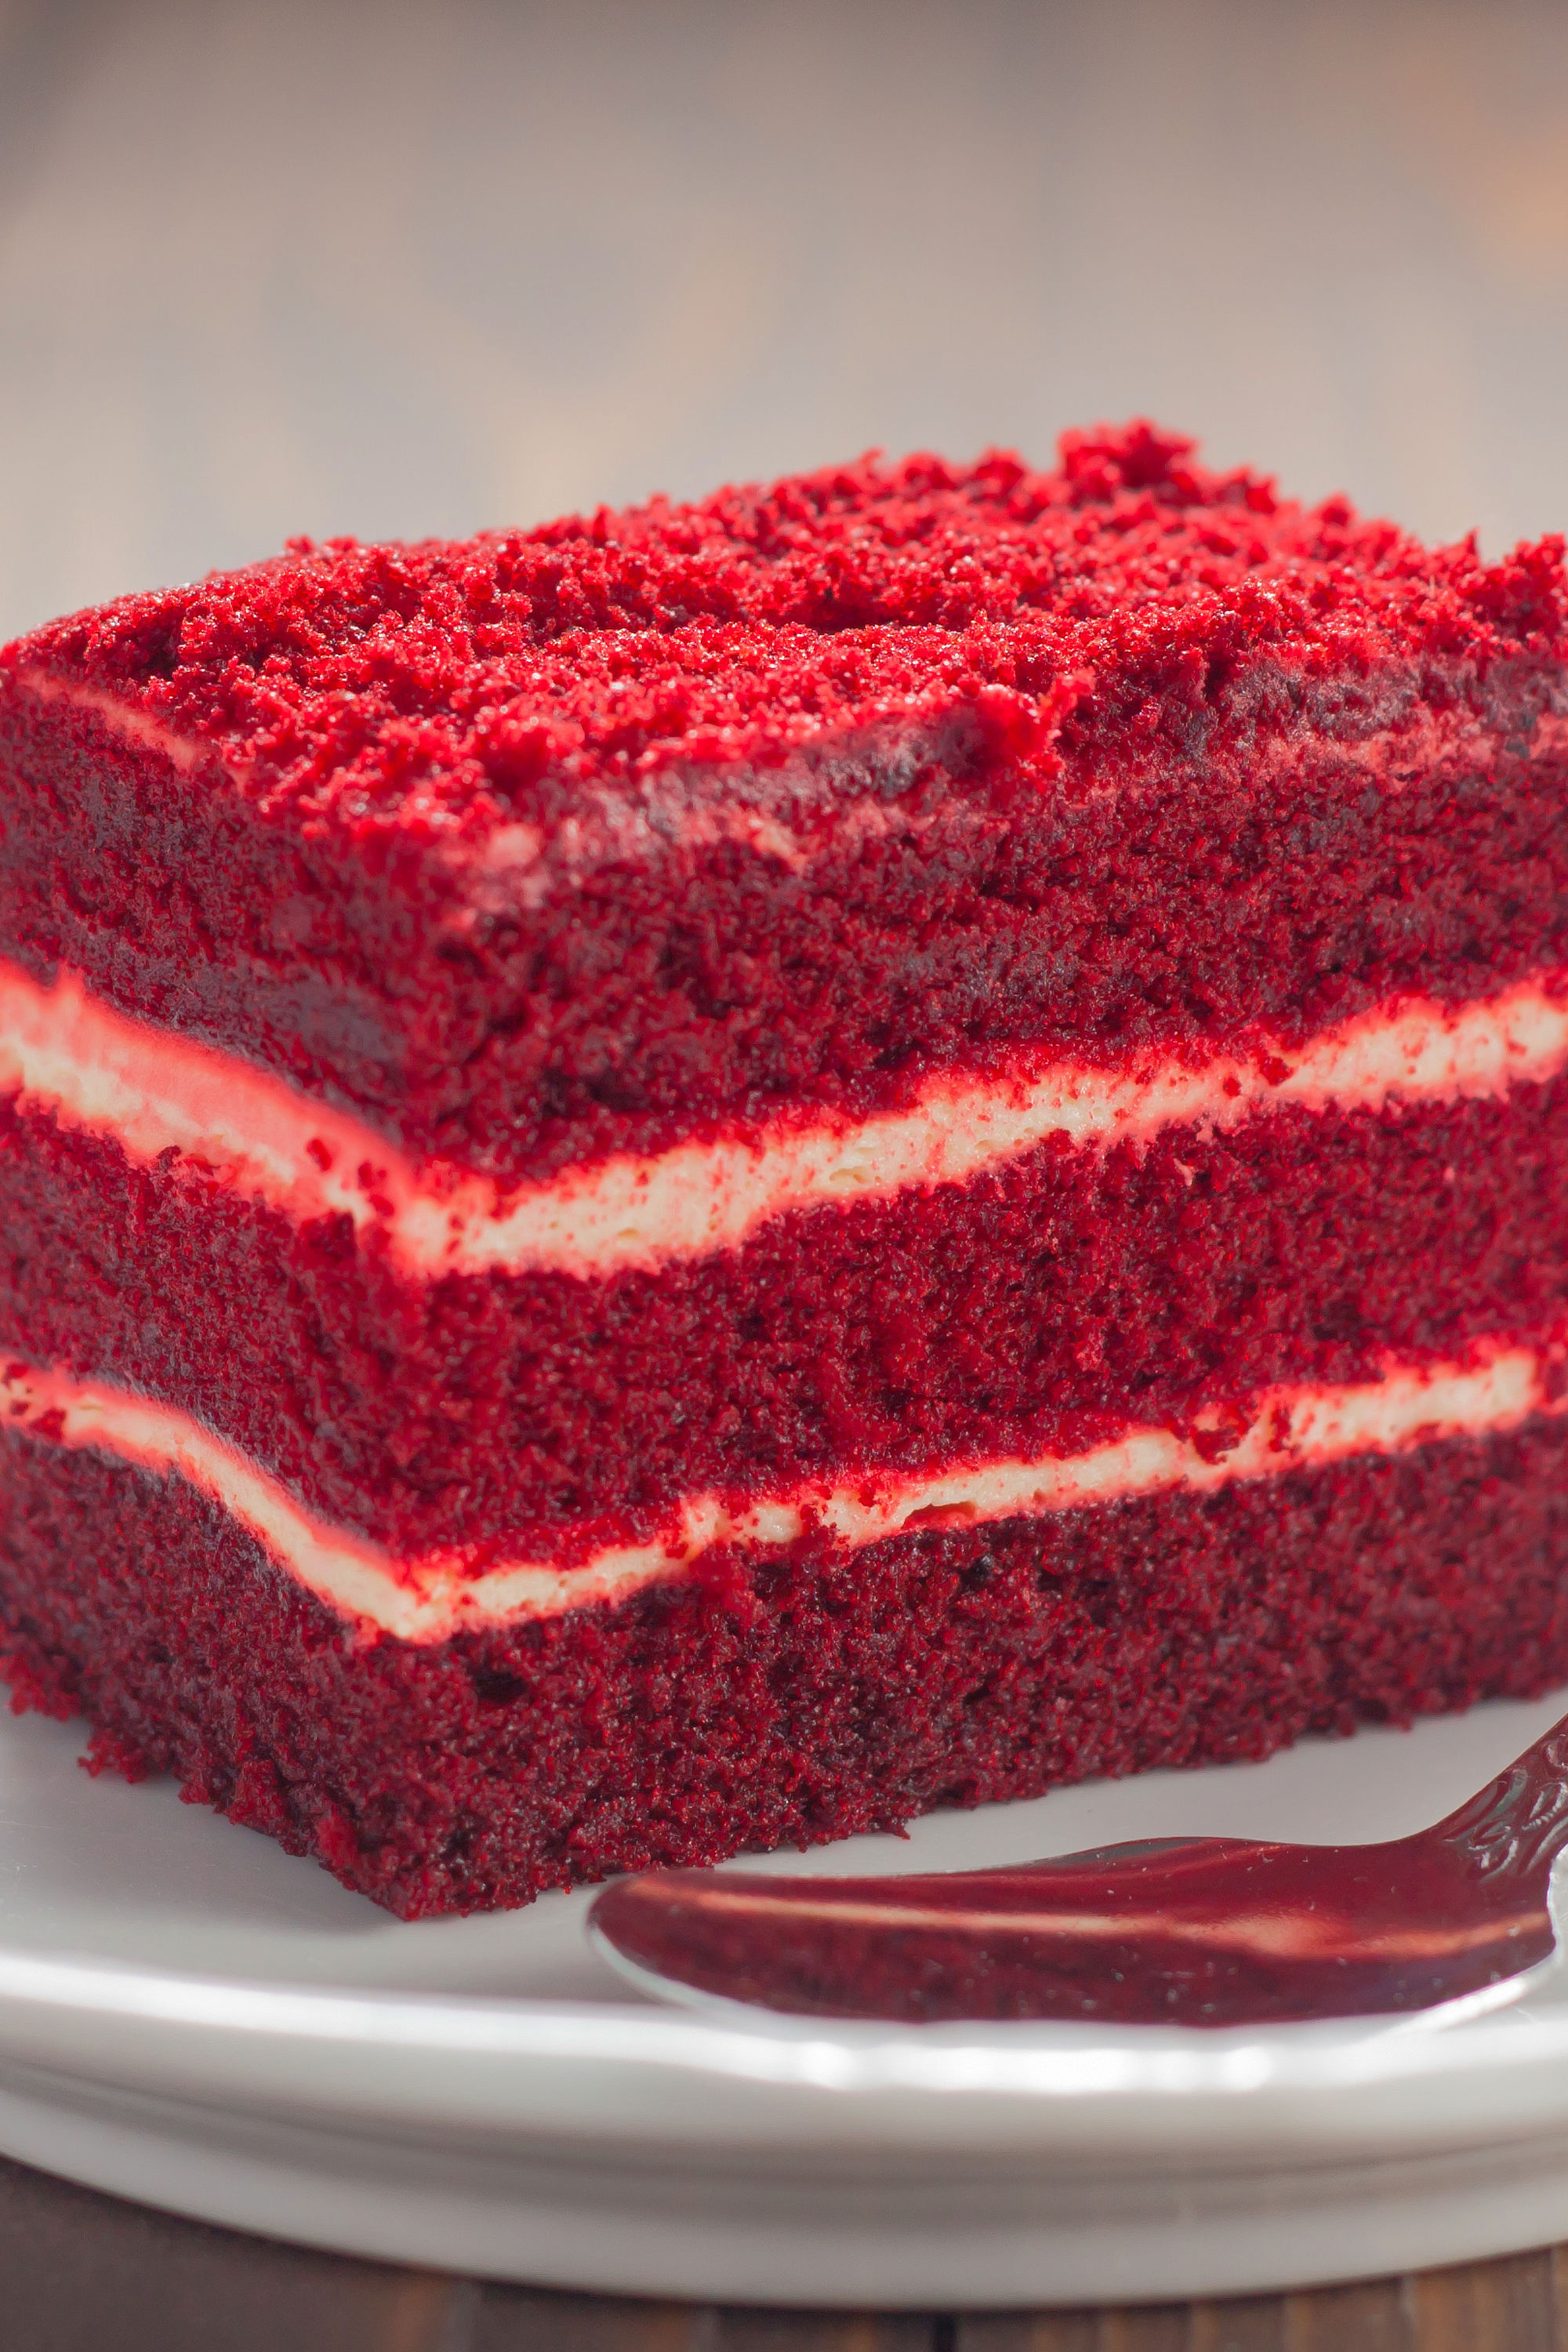 Best Way To Decorate A Red Velvet Cake